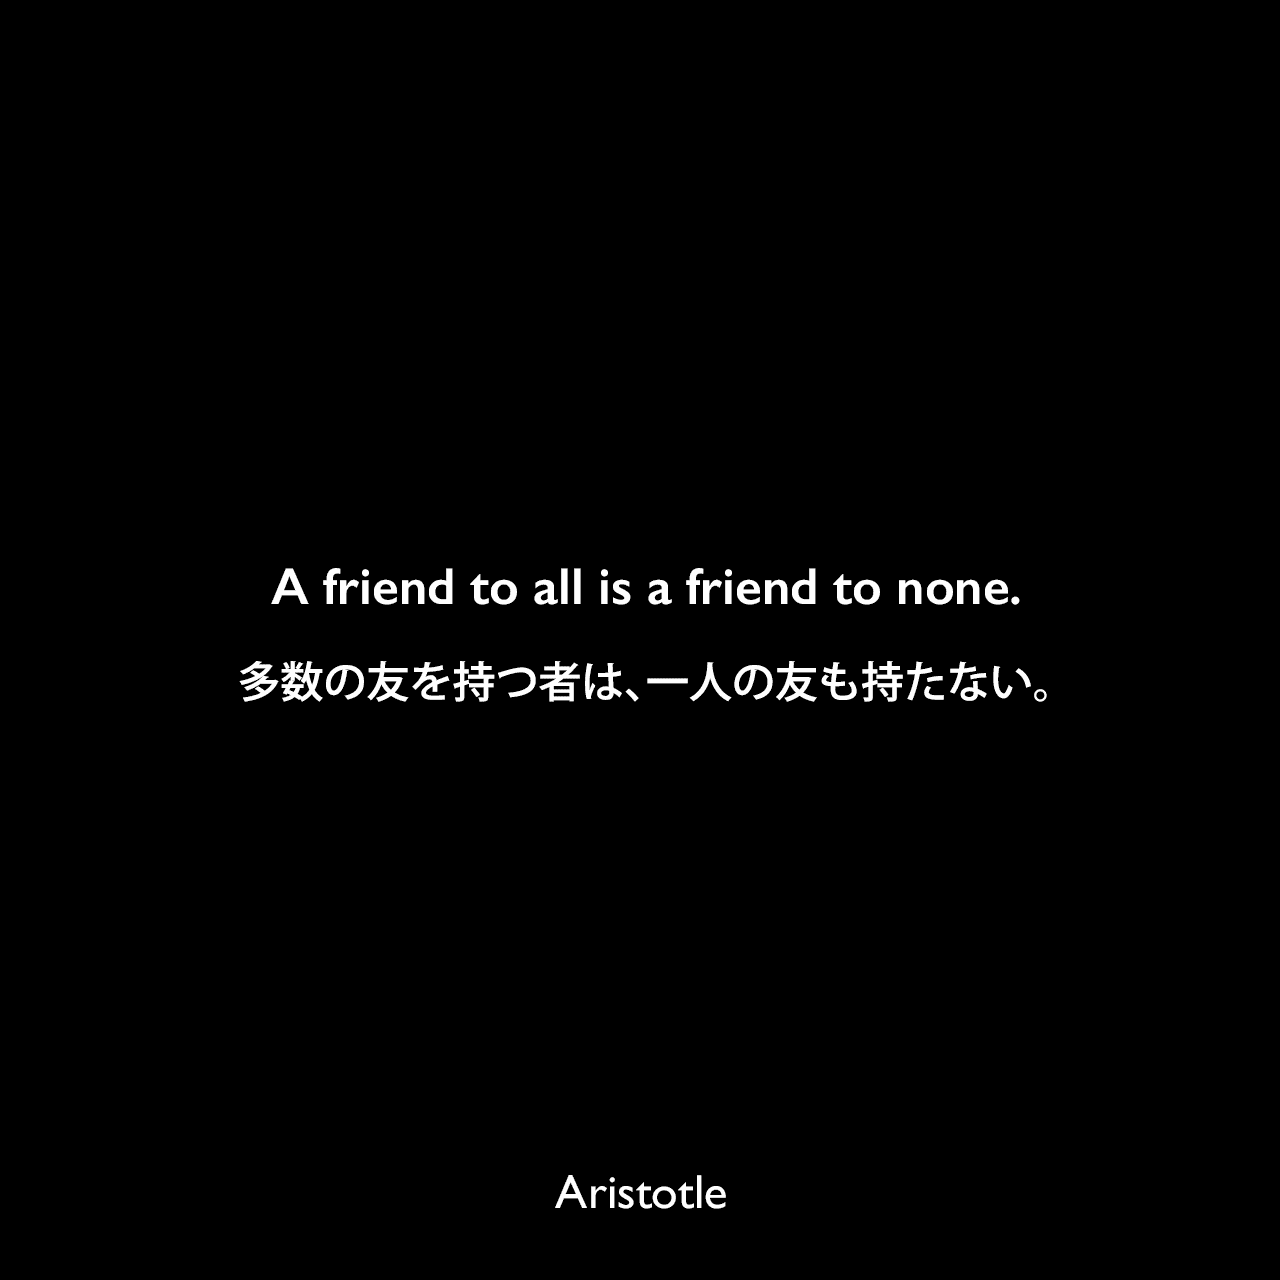 A friend to all is a friend to none.多数の友を持つ者は、一人の友も持たない。Aristotle